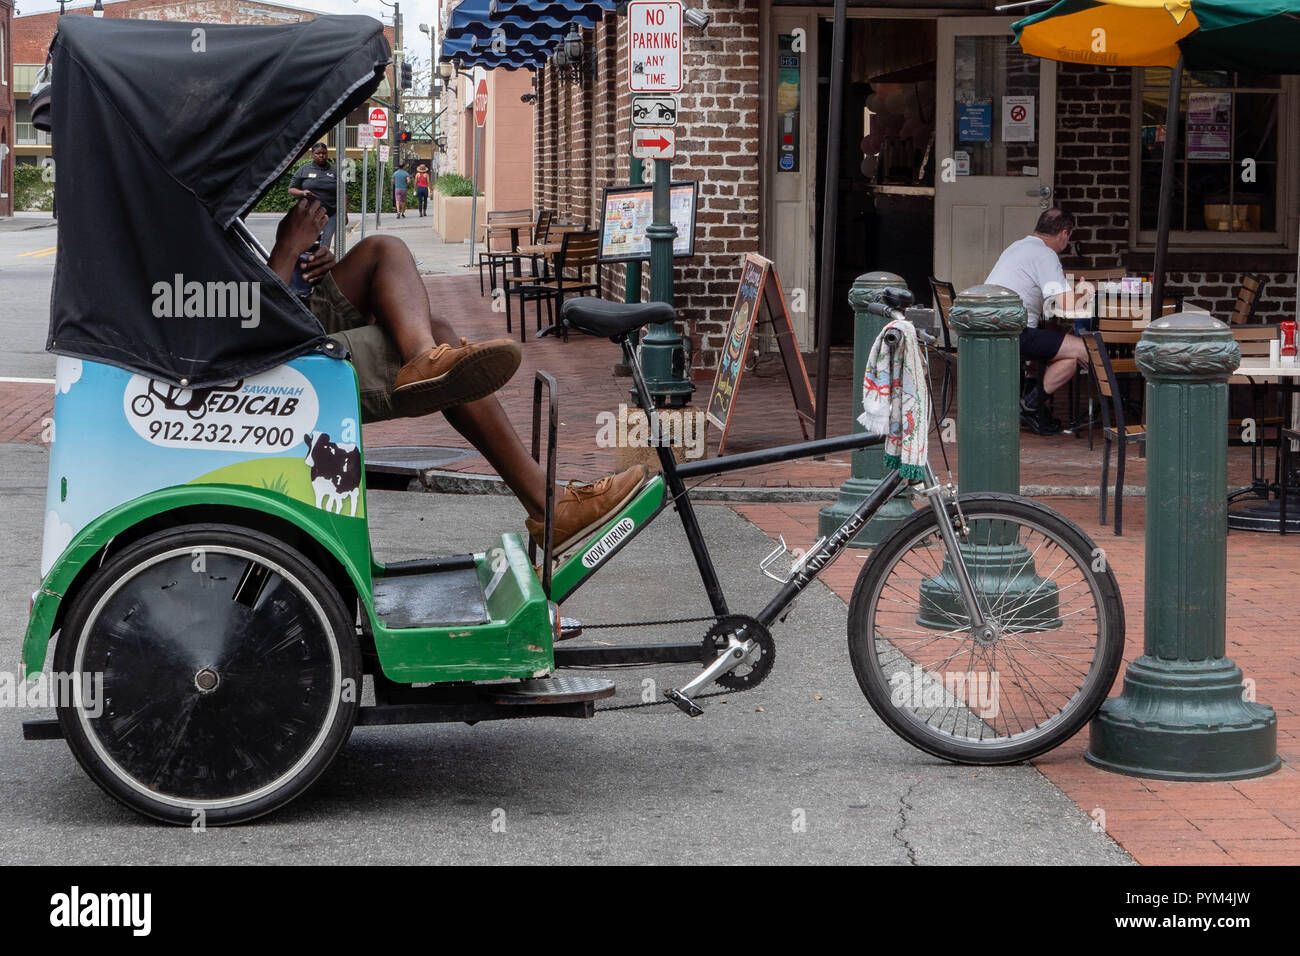 The rider of a rickshaw cycle or pedicab taxi taking a break on a street corner in Savannah Georgia USA - Stock Image